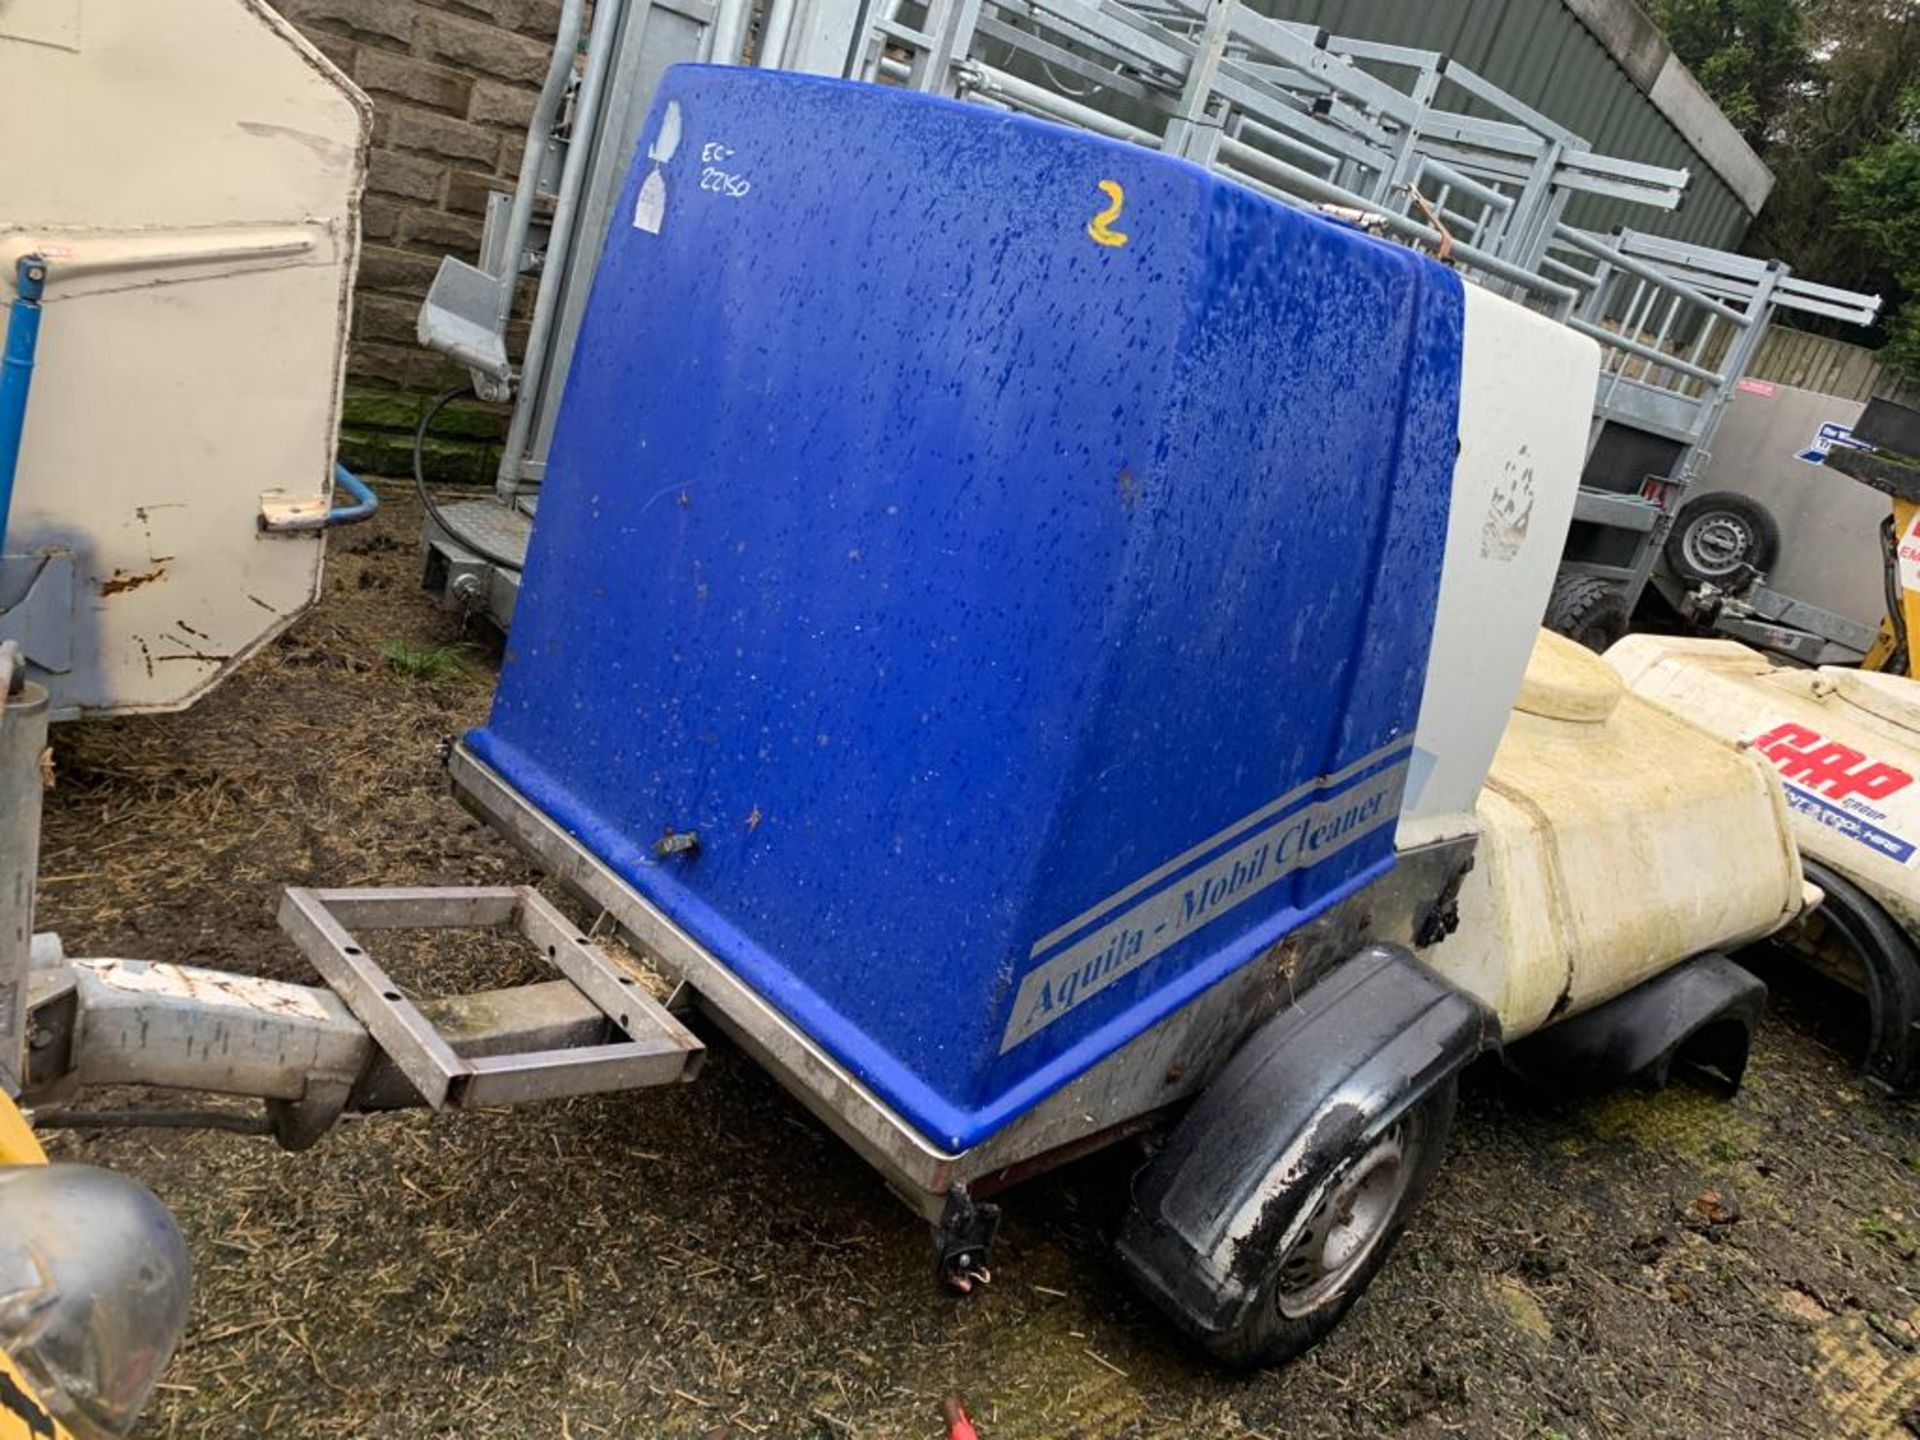 Lot 113 - AQUILA HIGH-PRESSURE MOBILE CLEANER / HOT WATER / DIESEL ENGINE - TOW-ABLE *PLUS VAT*